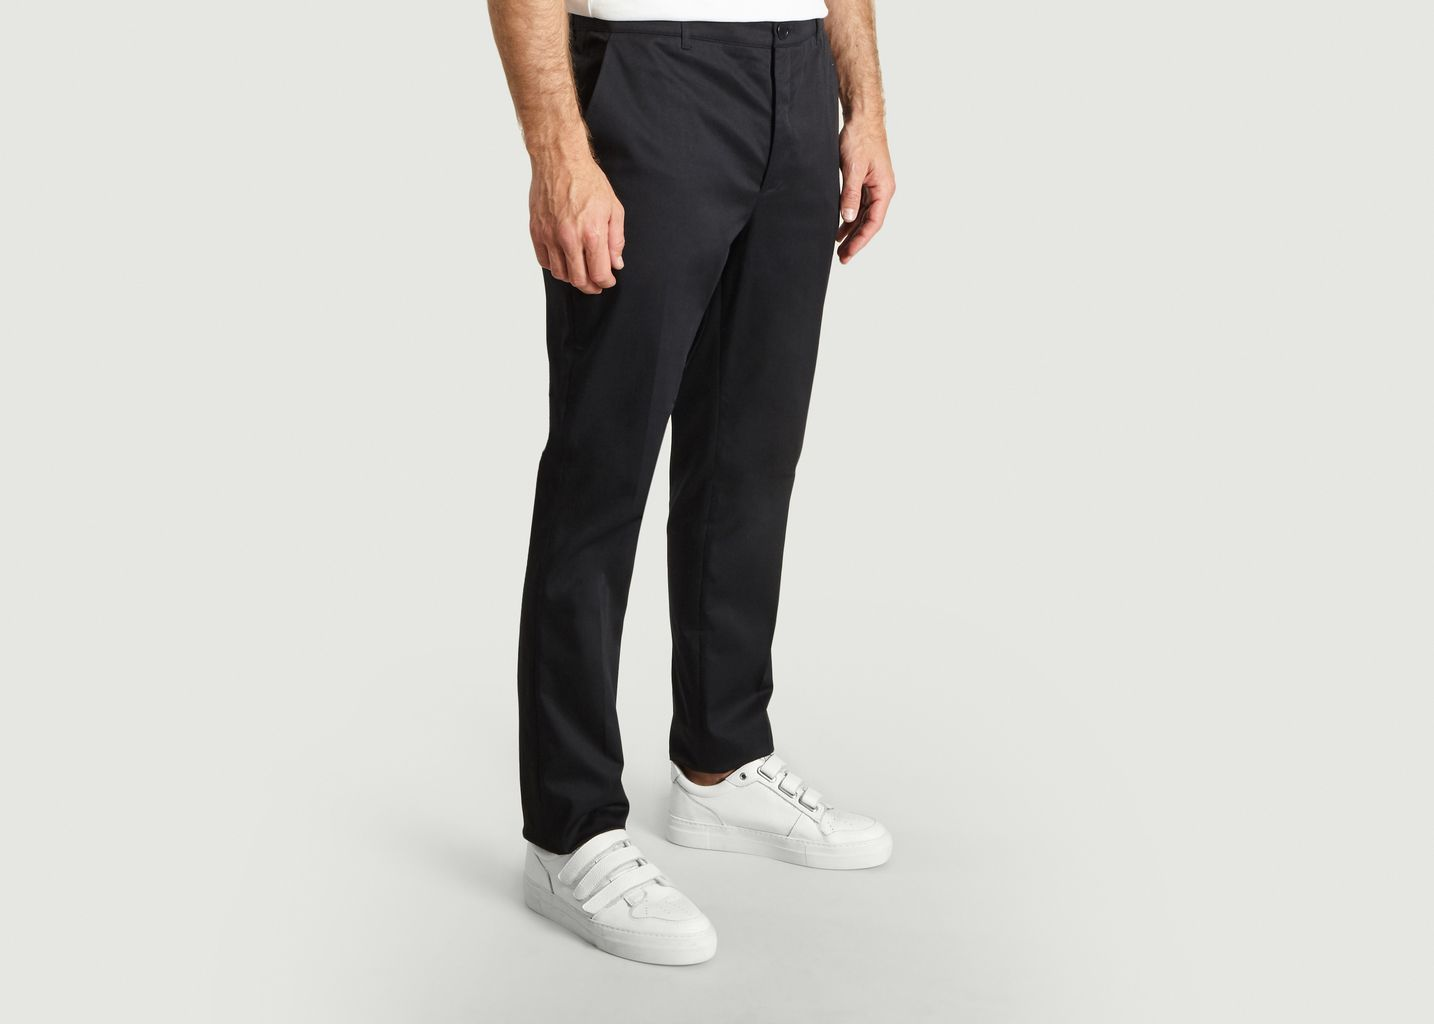 Pantalon Chino GN6 - Commune de Paris